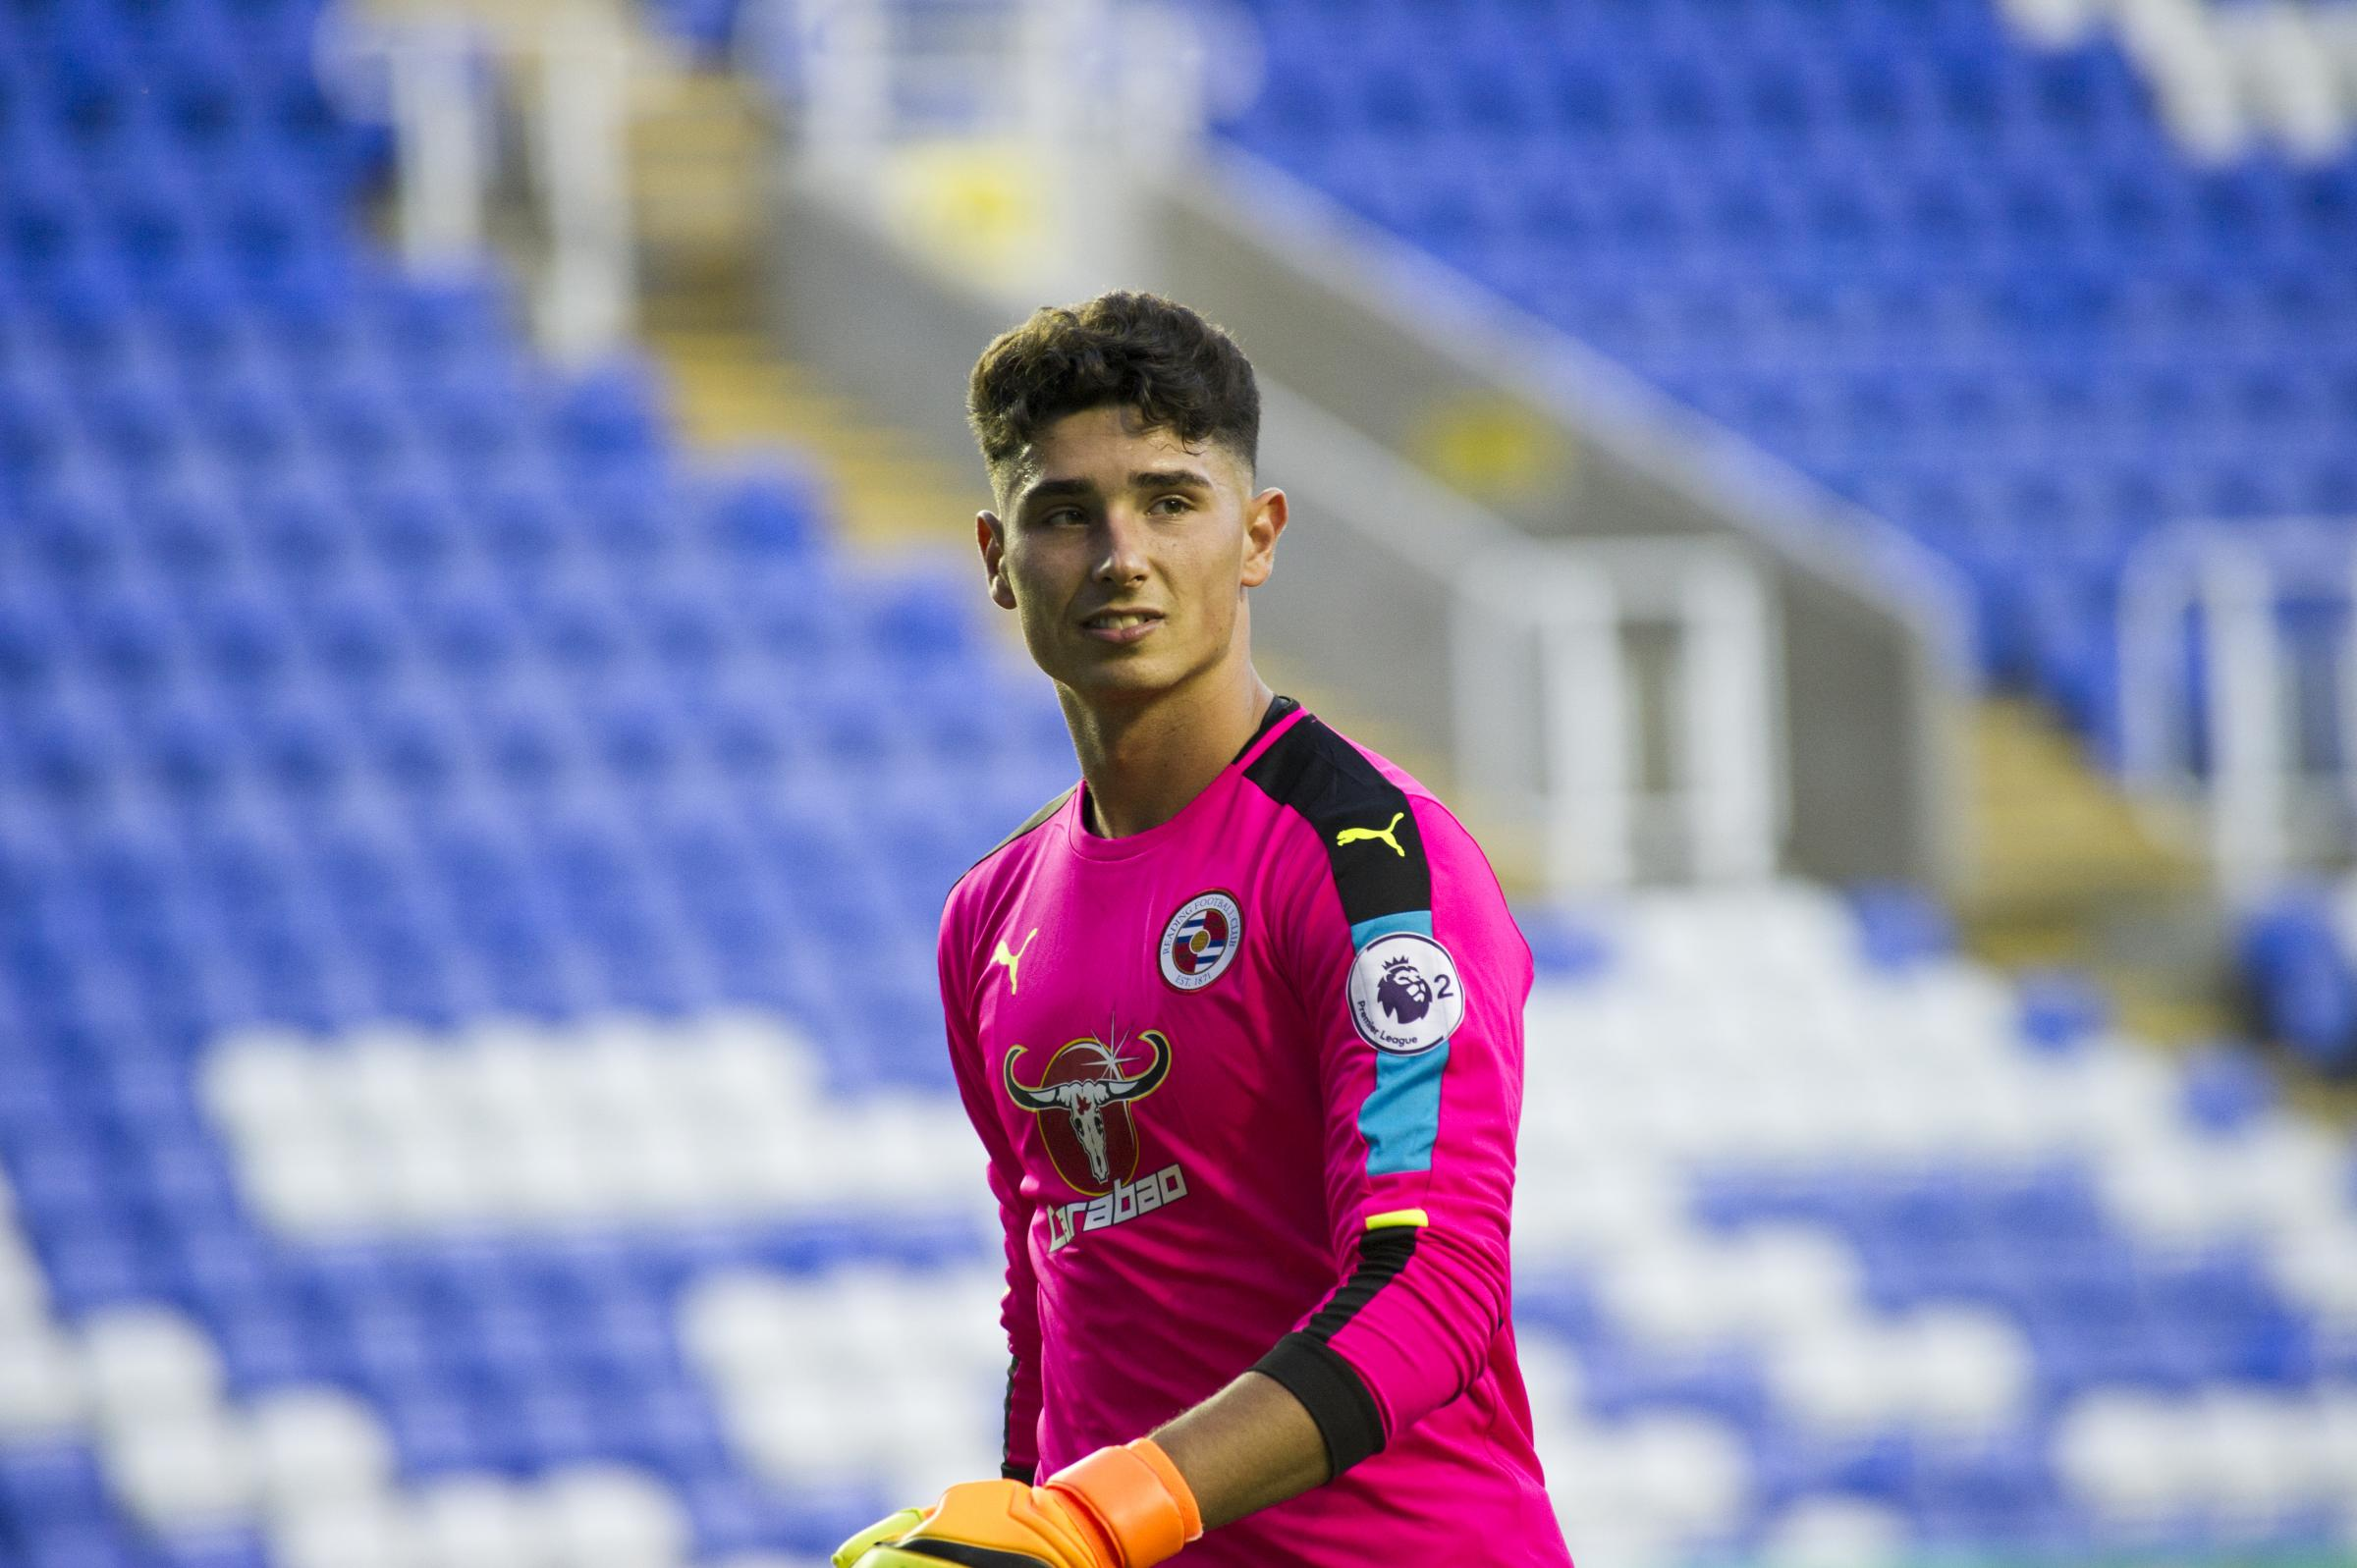 Luke Southwood has signed a new contract with Reading FC